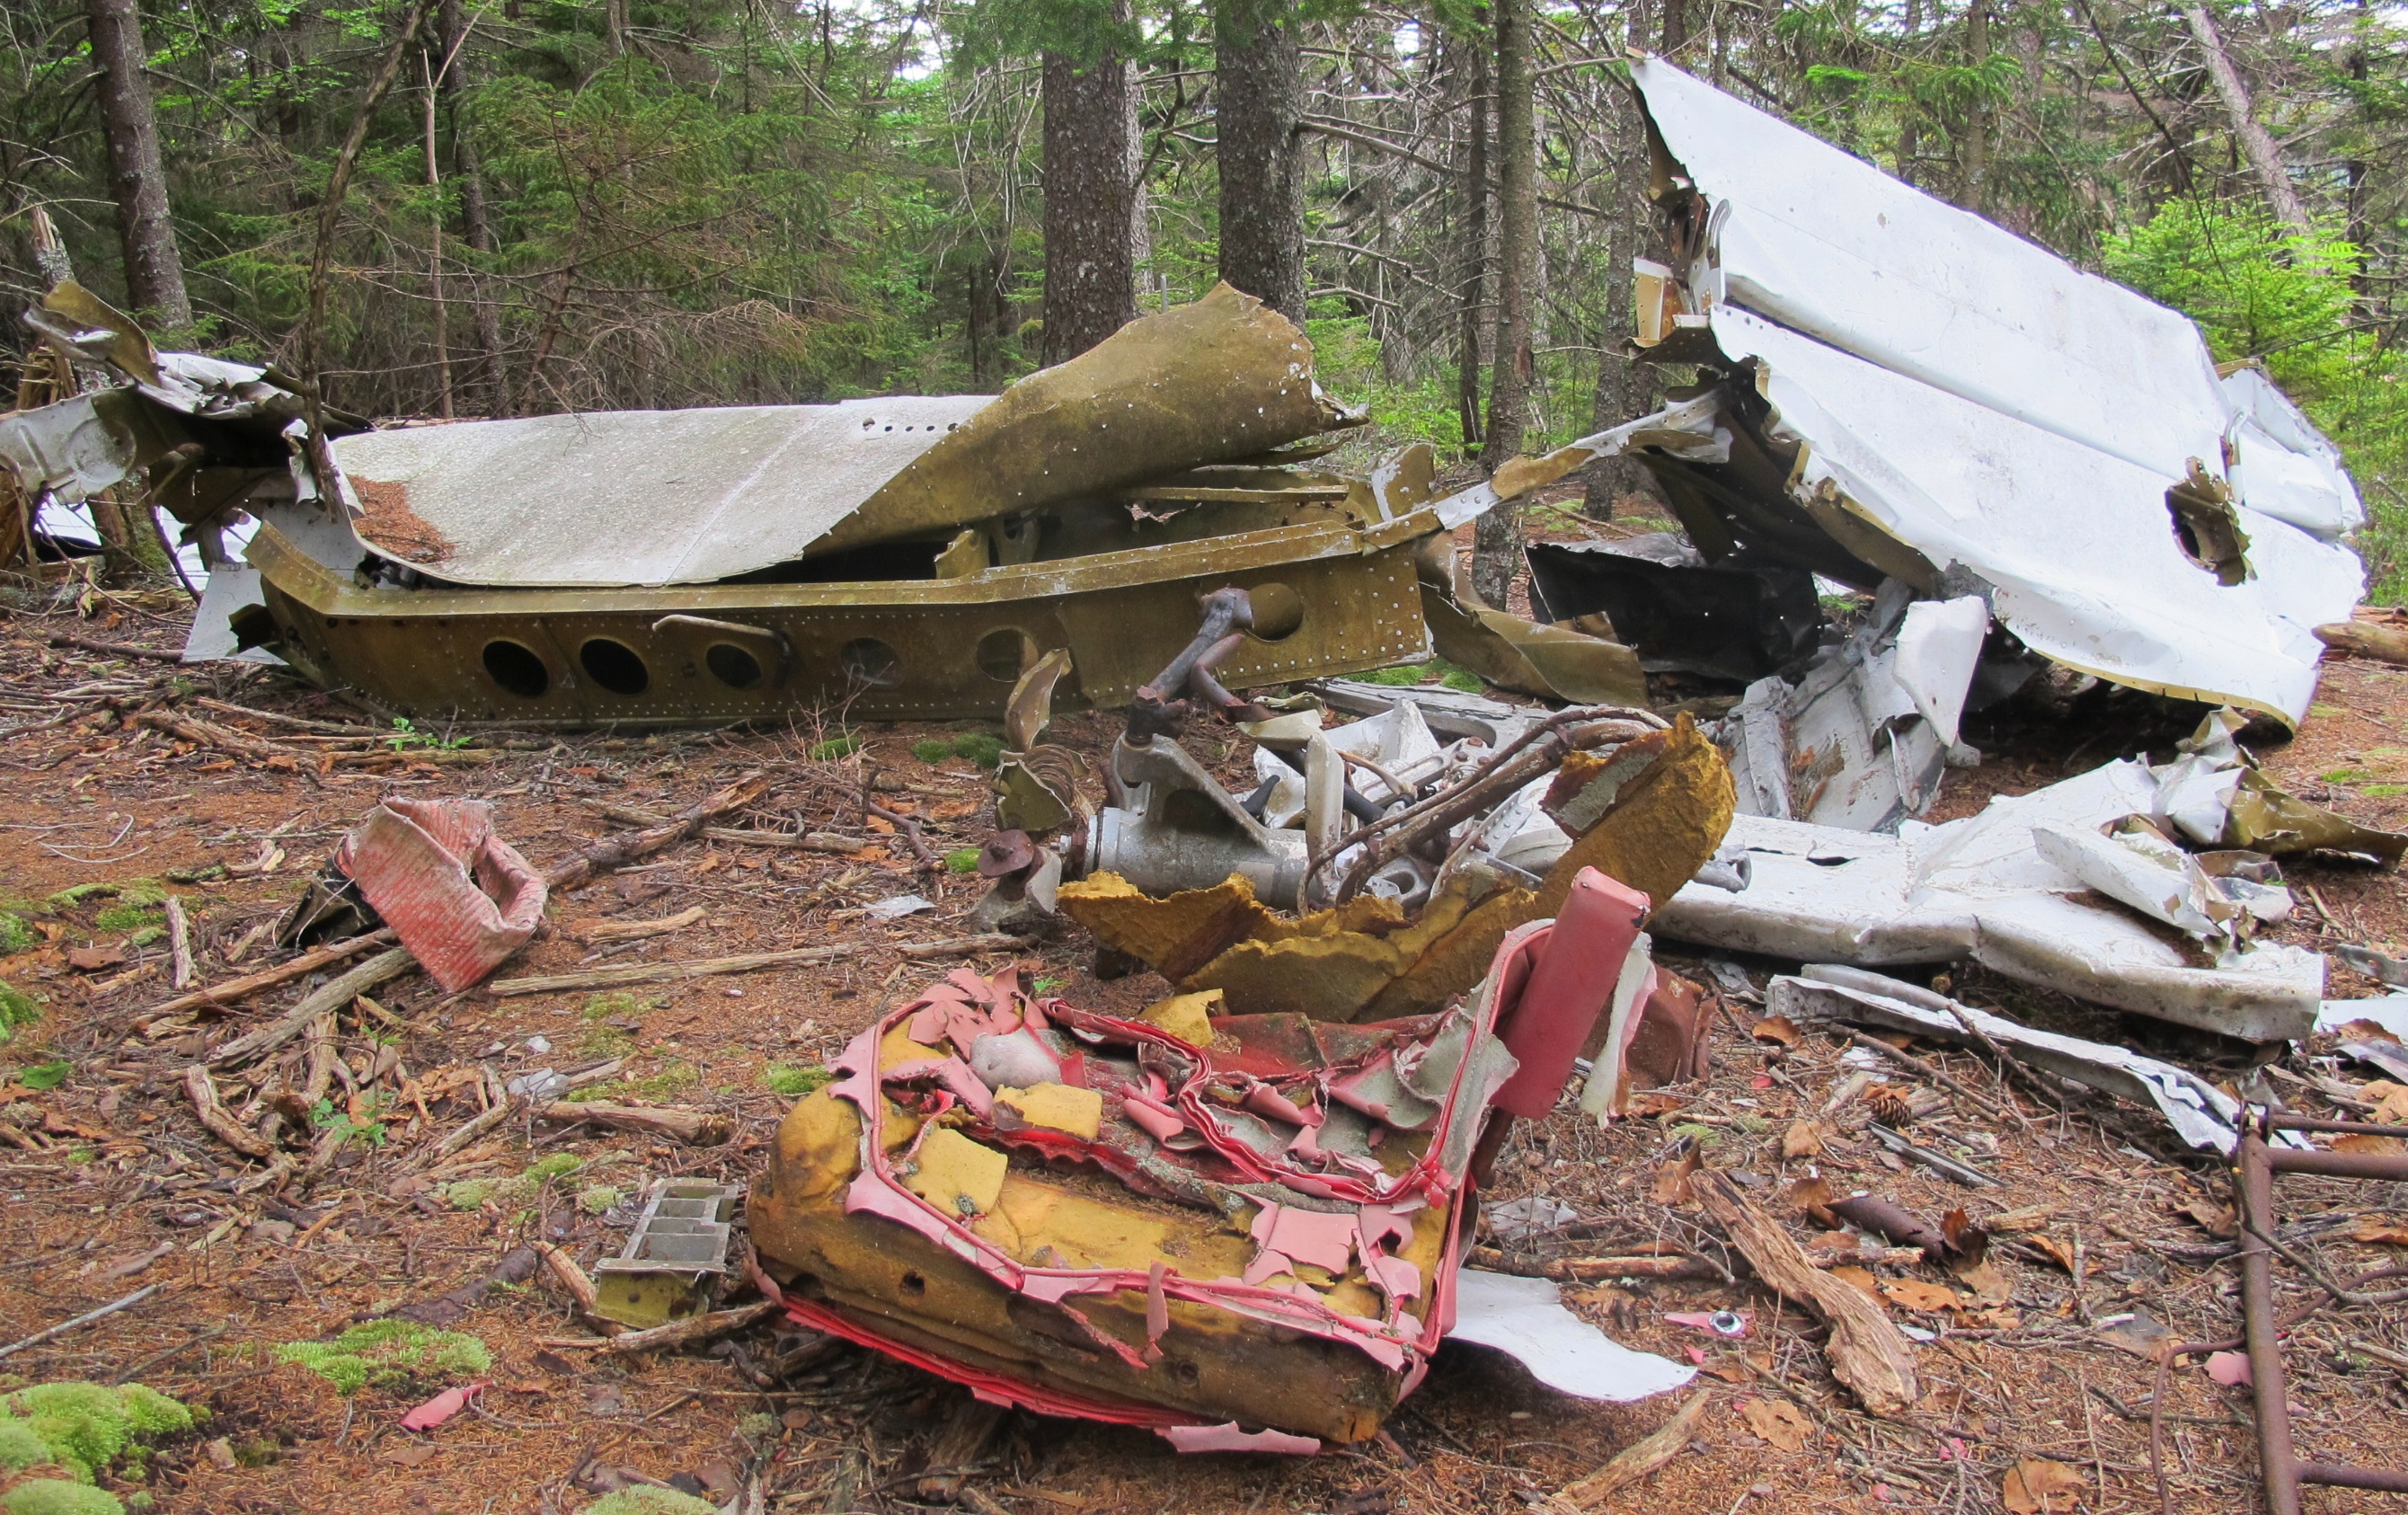 The Wreckage Of A Deadly Plane Crash In 1970 Has Become An Unofficial Attraction At Acadia National Park